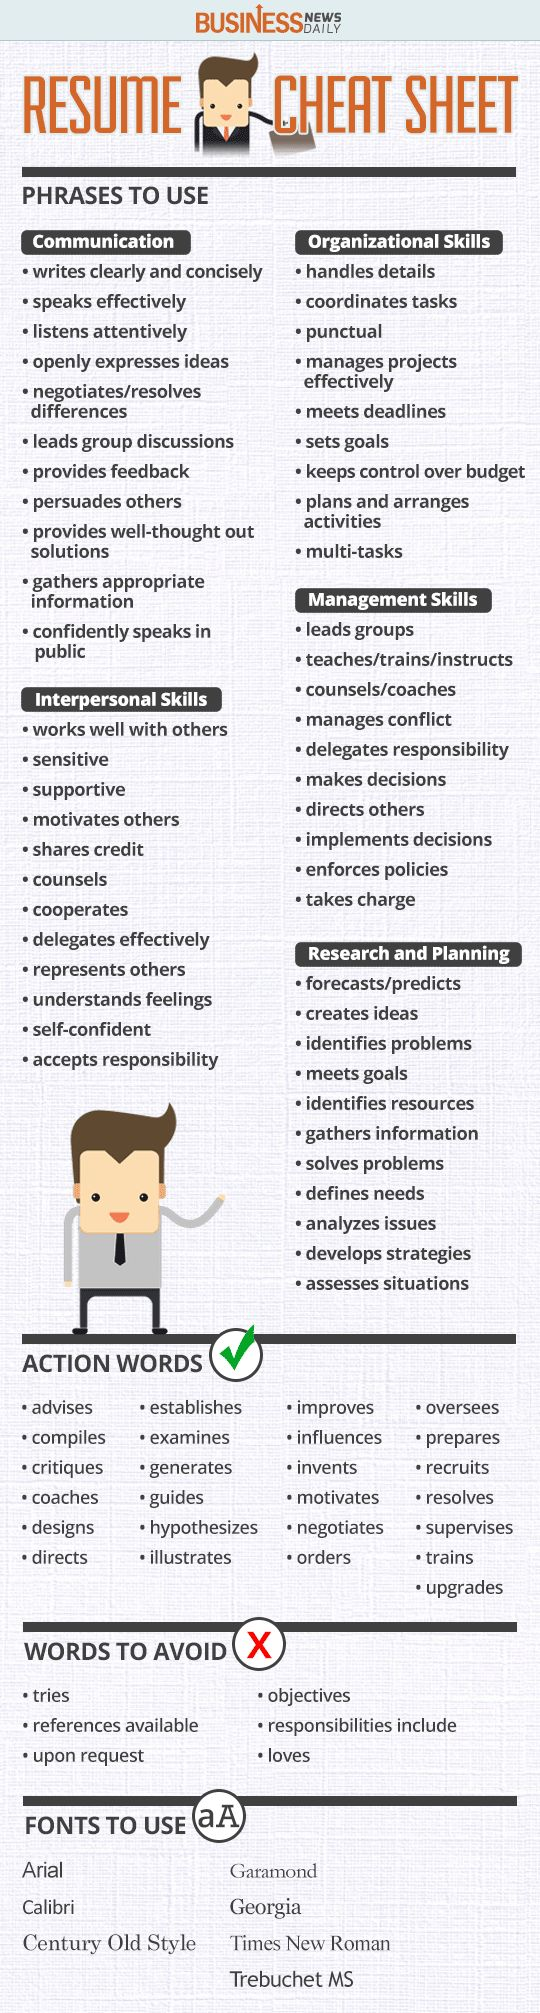 Opposenewapstandardsus  Mesmerizing  Ideas About Resume On Pinterest  Cv Format Resume Cv And  With Fetching Resume Cheat Sheet Infographic Andrews Almost Done With A Complete Unit On Employment Which With Divine Operations Manager Resume Examples Also Objective For Healthcare Resume In Addition English Major Resume And Occupational Therapy Assistant Resume As Well As Housekeeping Job Description For Resume Additionally Make An Online Resume From Pinterestcom With Opposenewapstandardsus  Fetching  Ideas About Resume On Pinterest  Cv Format Resume Cv And  With Divine Resume Cheat Sheet Infographic Andrews Almost Done With A Complete Unit On Employment Which And Mesmerizing Operations Manager Resume Examples Also Objective For Healthcare Resume In Addition English Major Resume From Pinterestcom